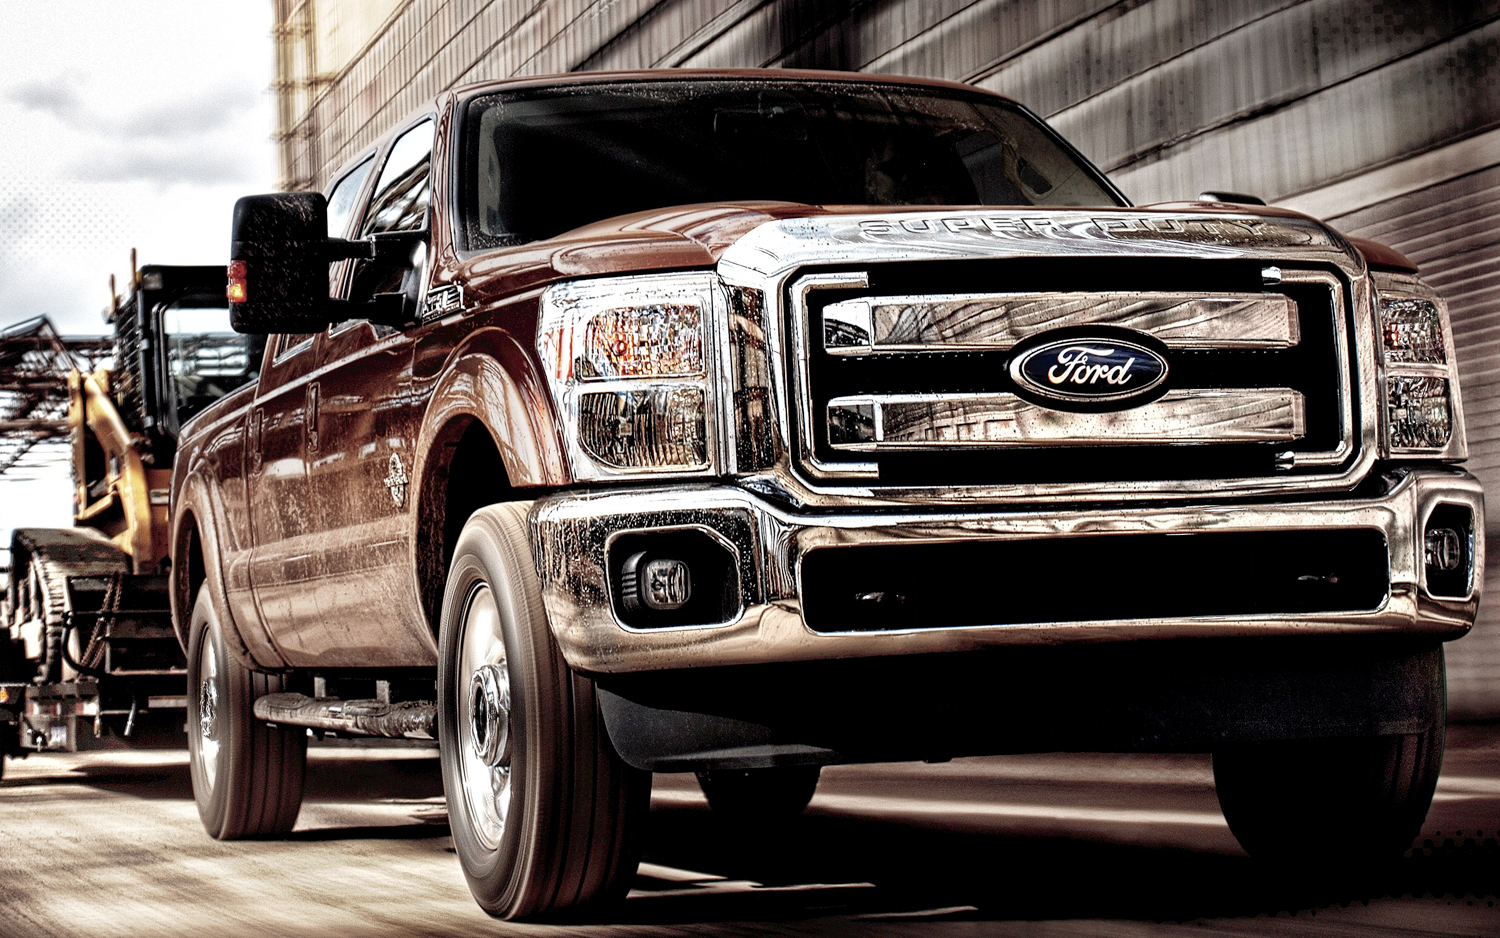 Ford F-350 Super Duty #12